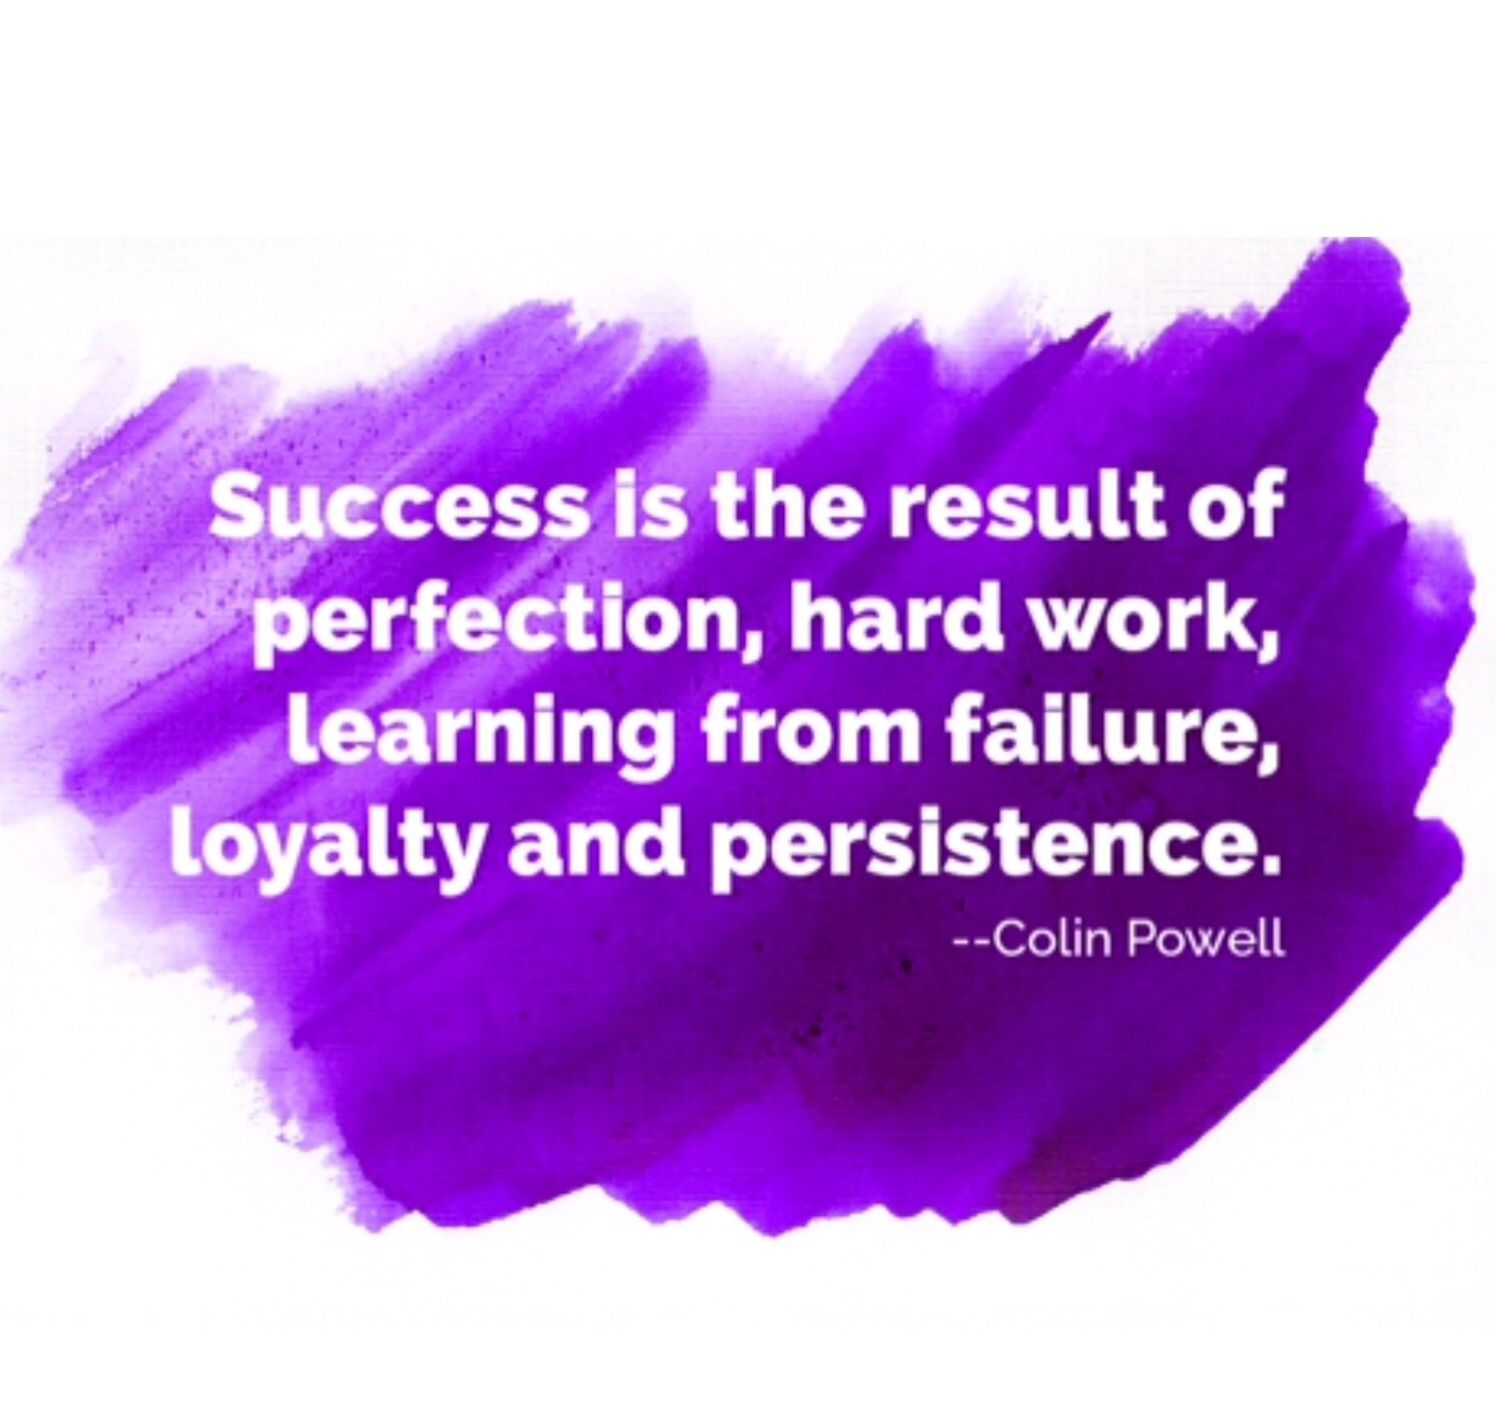 Success is the result of perfection, hard work, learning